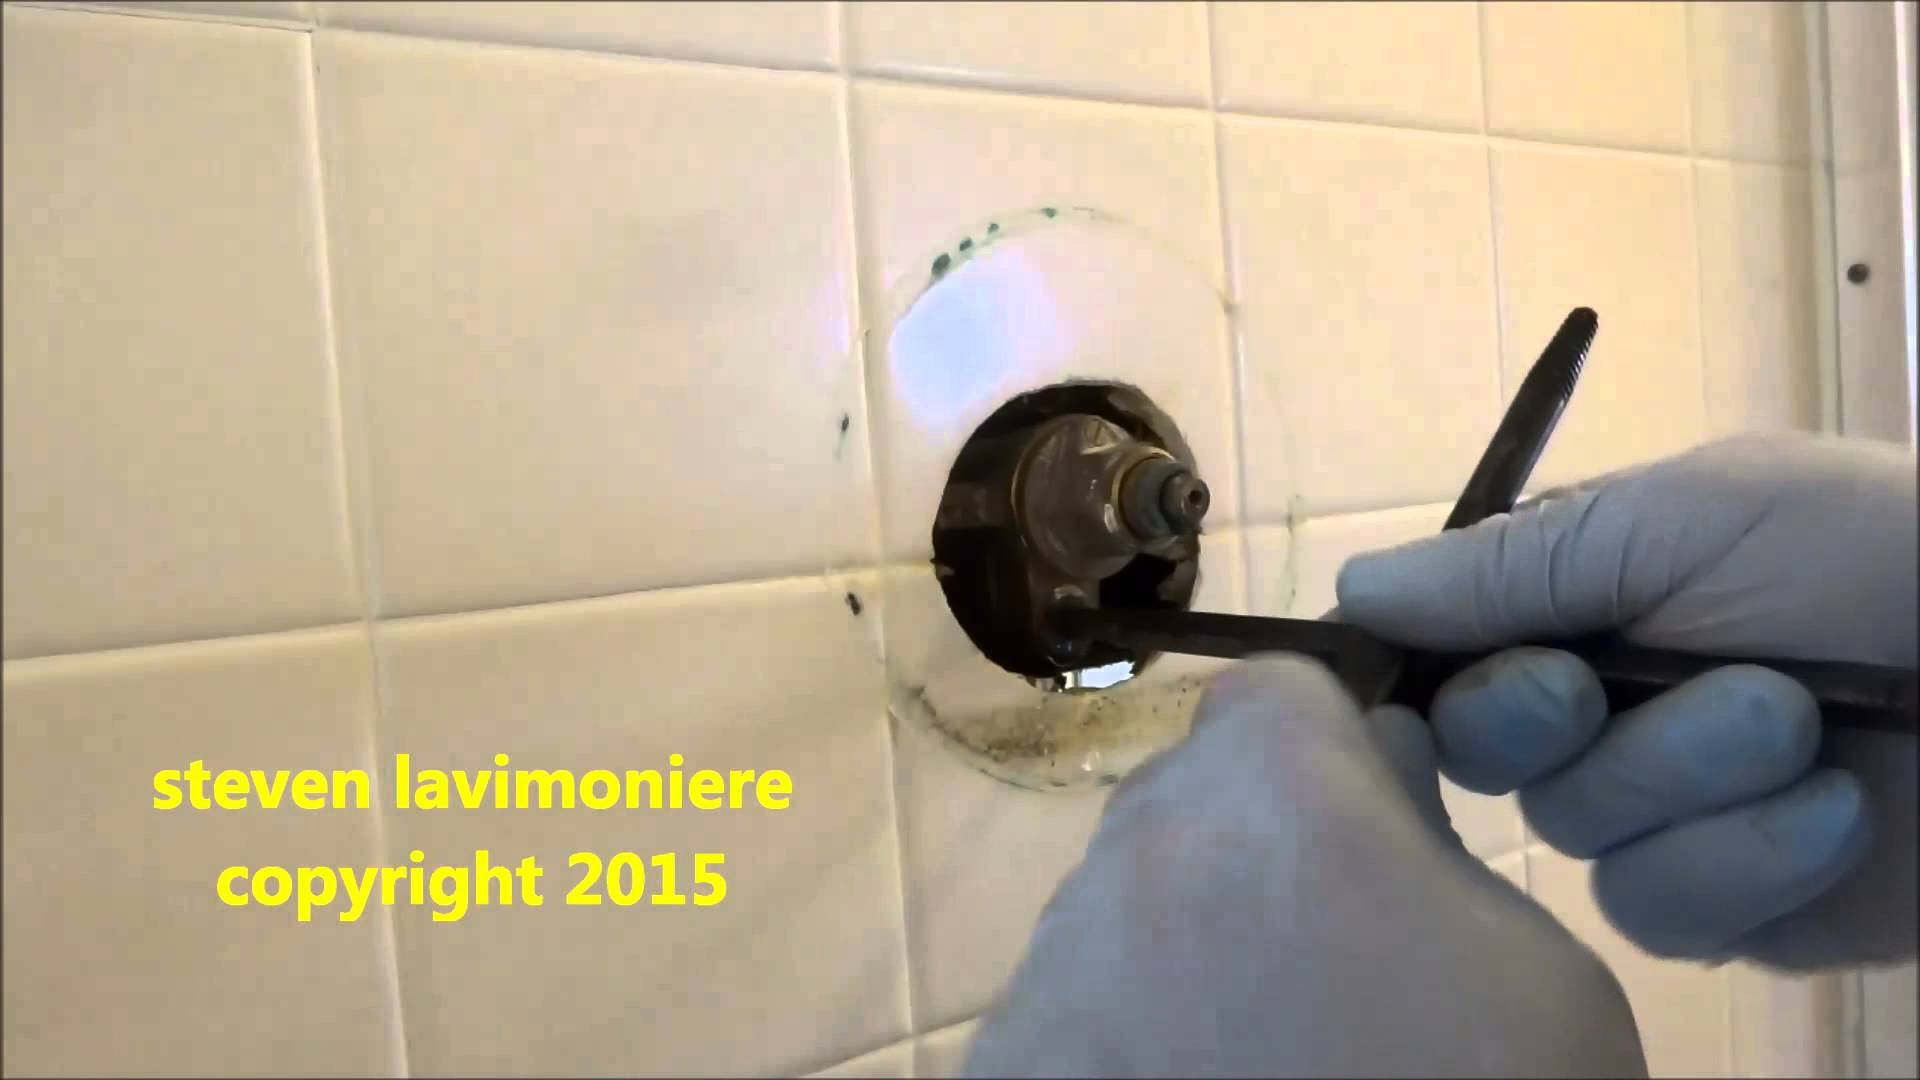 Ideas, symmons temptrol tub shower valve leaking in wallplumbing tips within dimensions 1920 x 1080  .